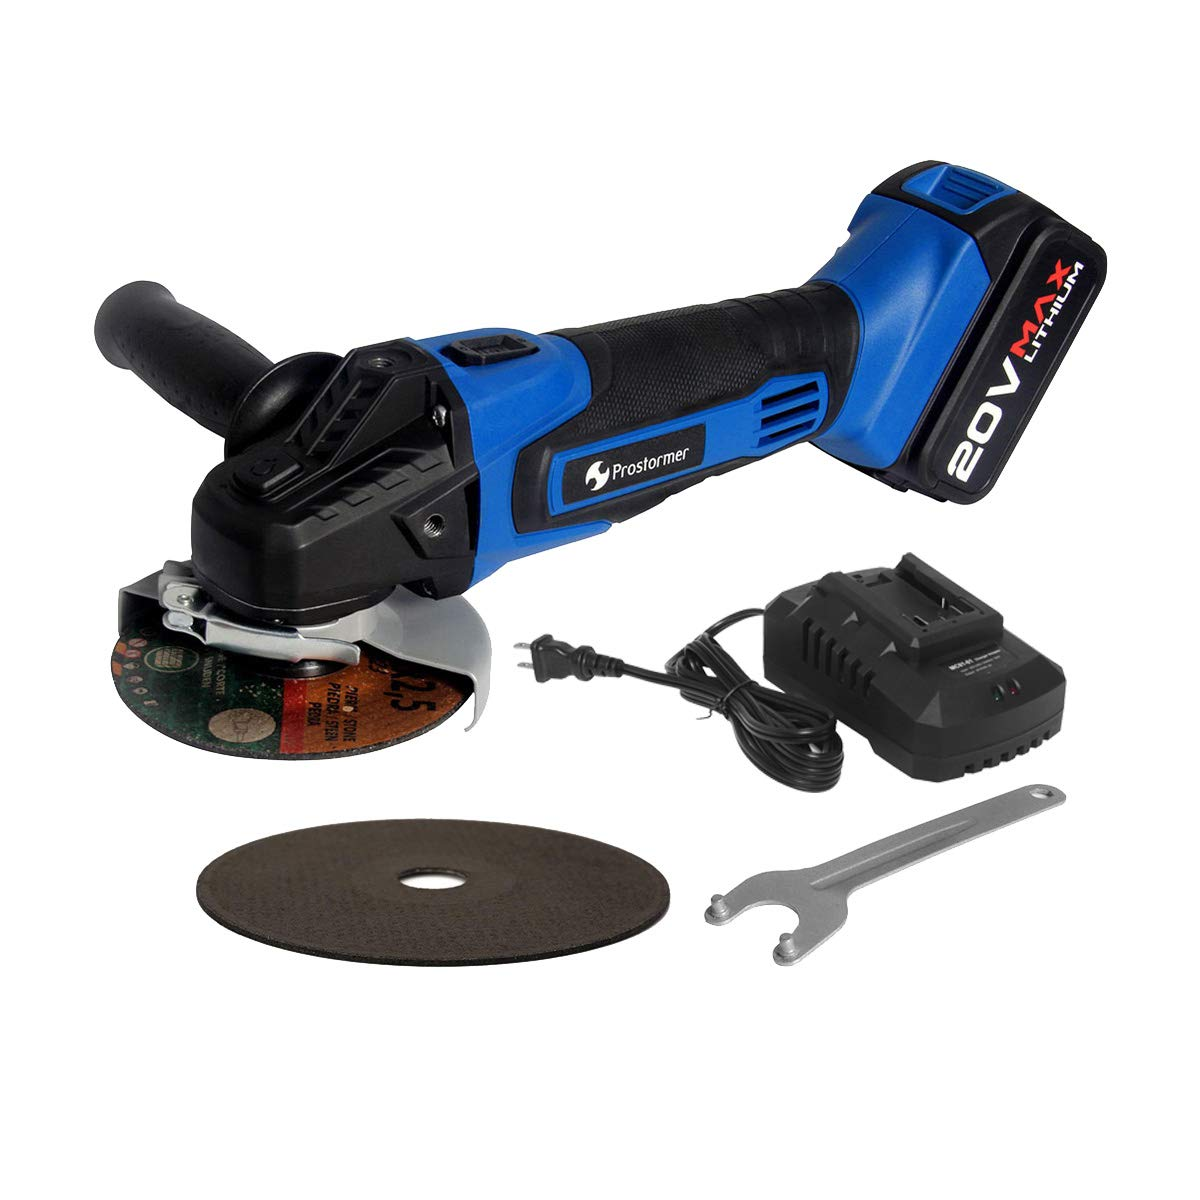 Prostormer 20V Max Cordless 4-1/2'' Angle Grinder with 3-Position Adjustable Auxiliary Handle, 1 x Cutting Wheel, 1 x Grinding Wheel, 4.0Ah Lithium-ion Battery and Fast Charger Included